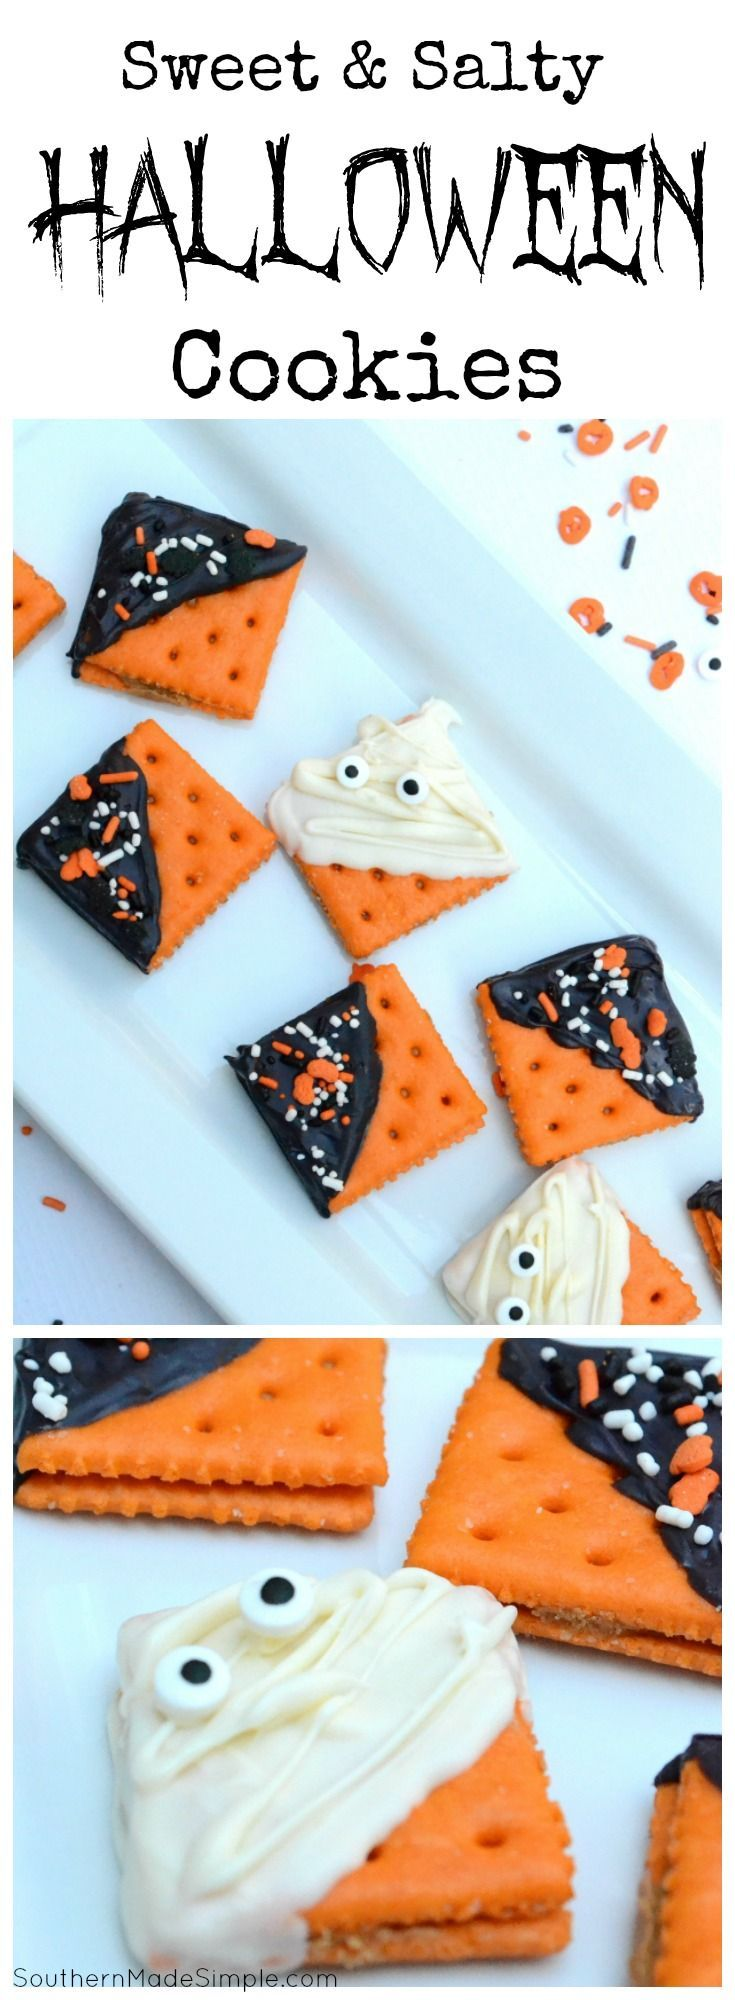 These fun sweet & salty Halloween cookies are fun to make and even more fun to eat! Plus, they only take about 5 minutes to make!